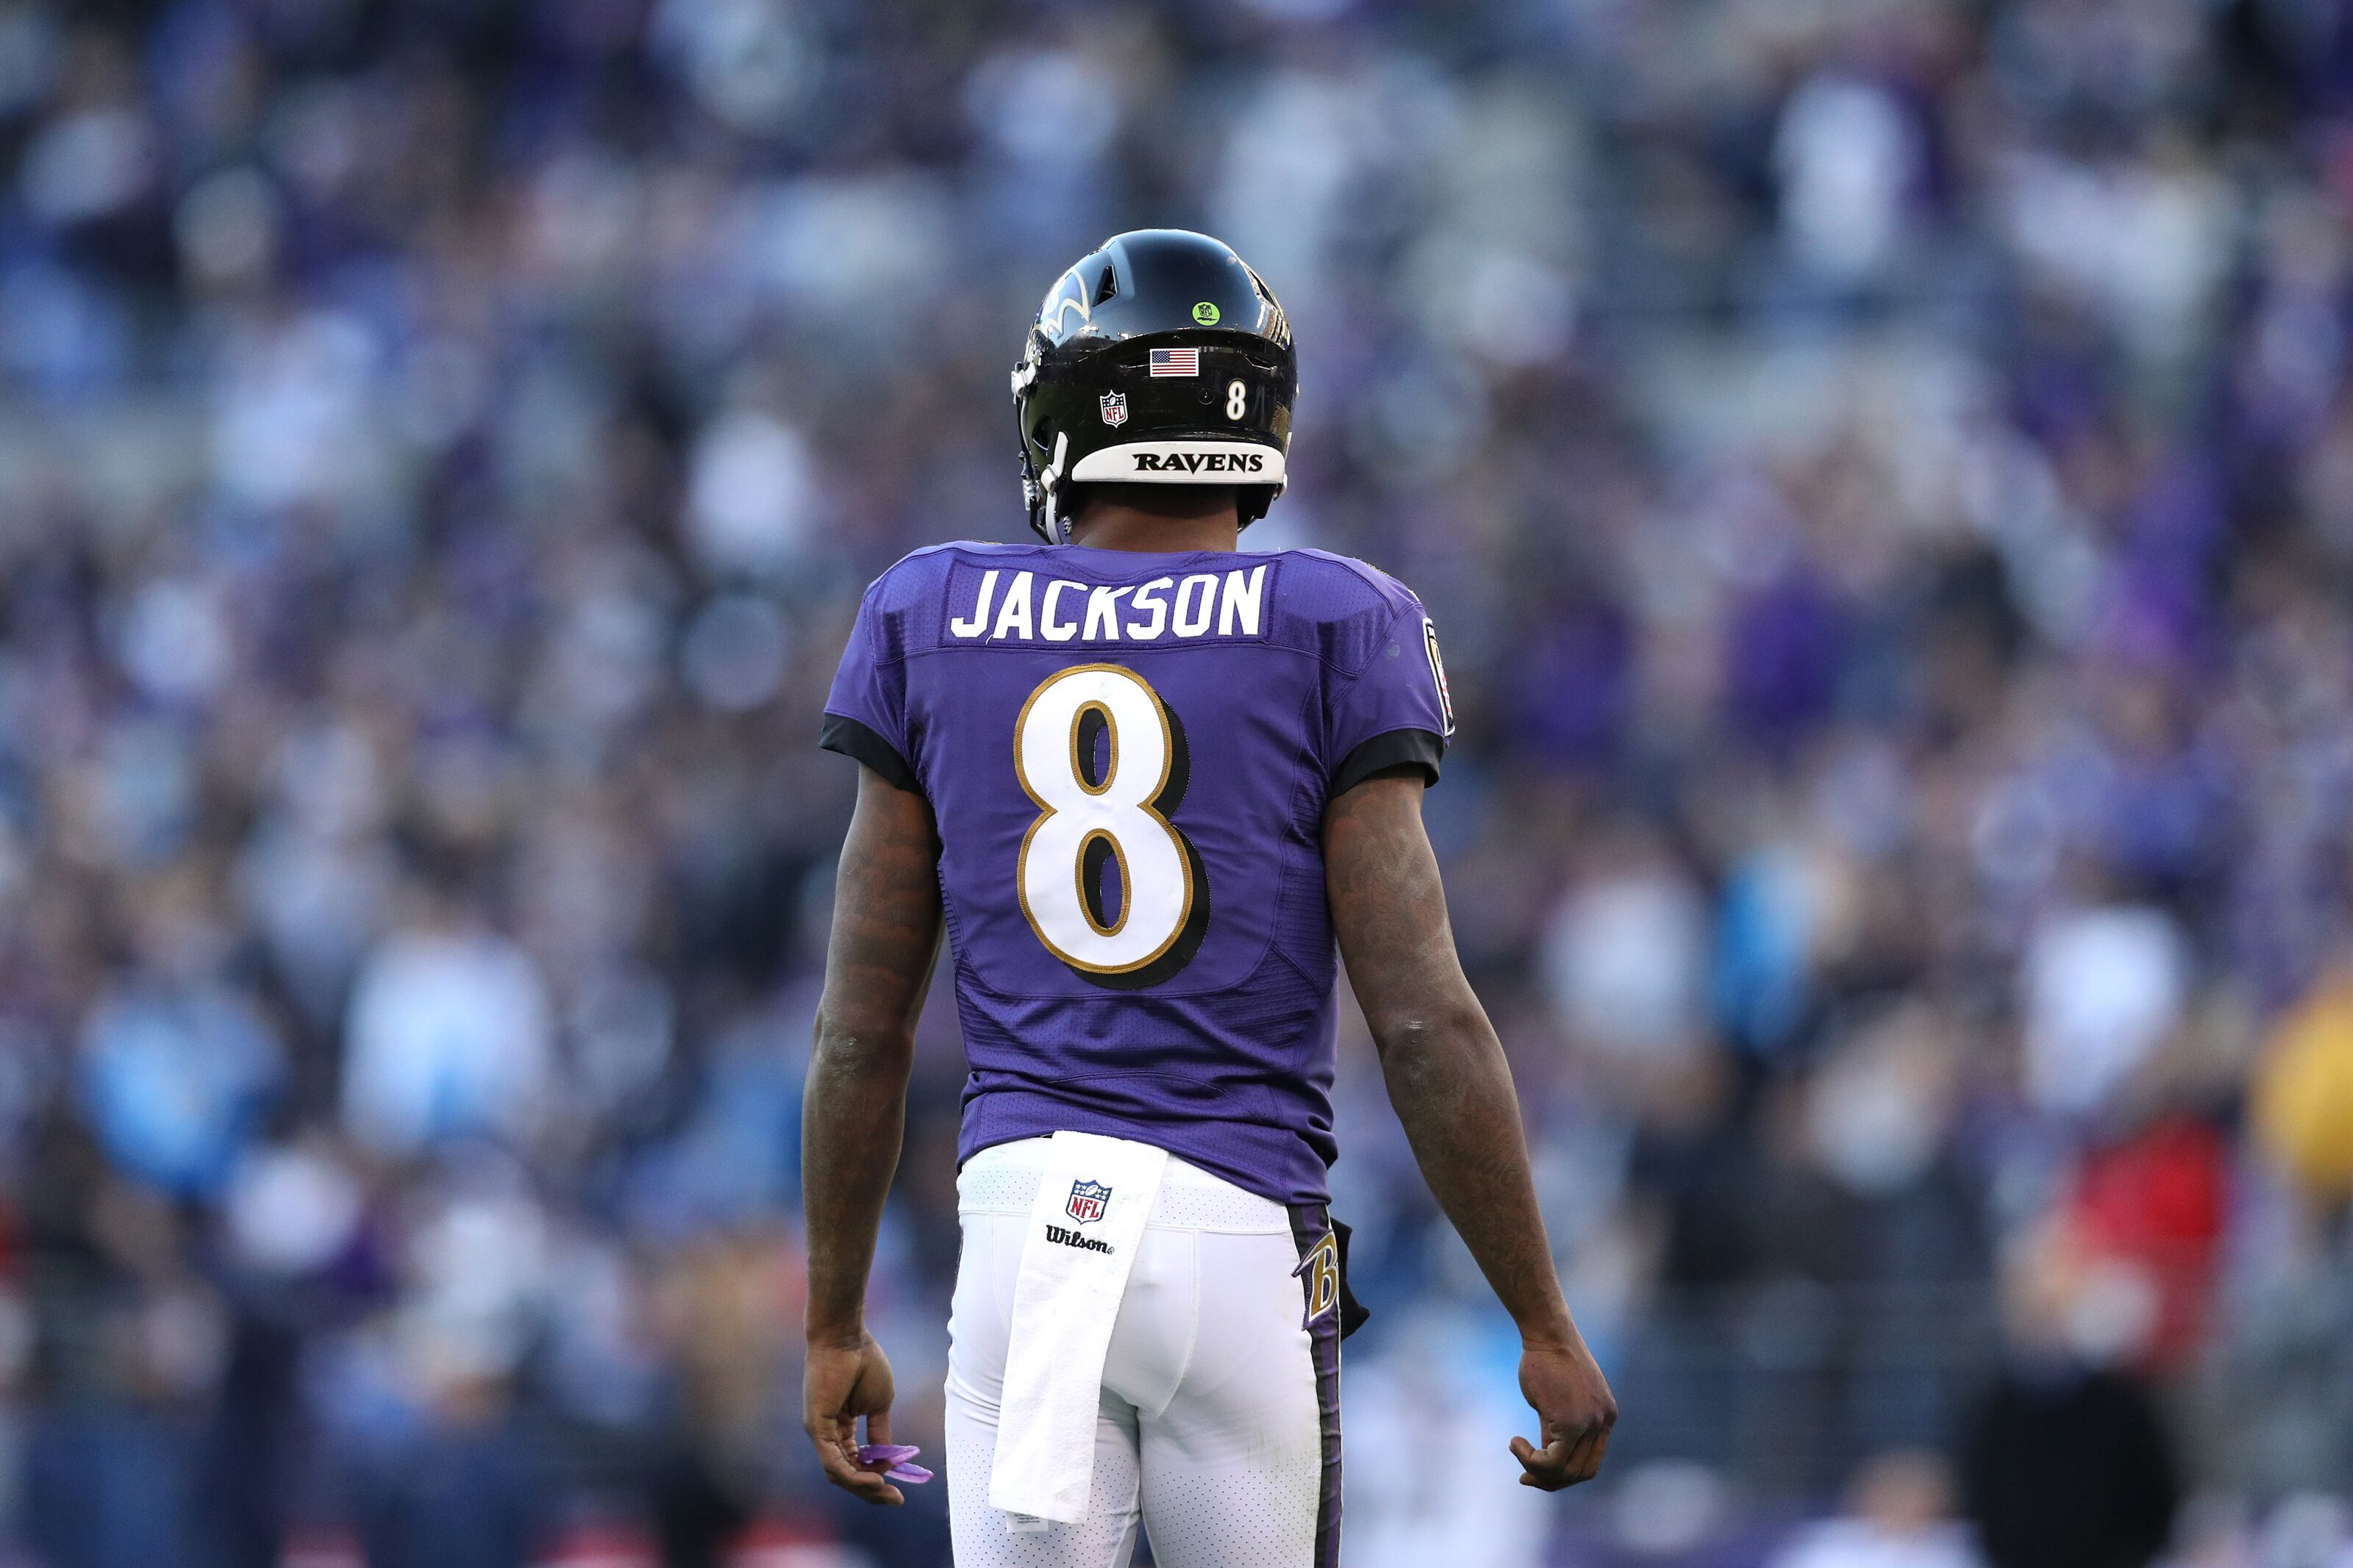 reputable site 3eb45 6c3c5 Are the Ravens hurting Lamar Jackson long-term with short ...